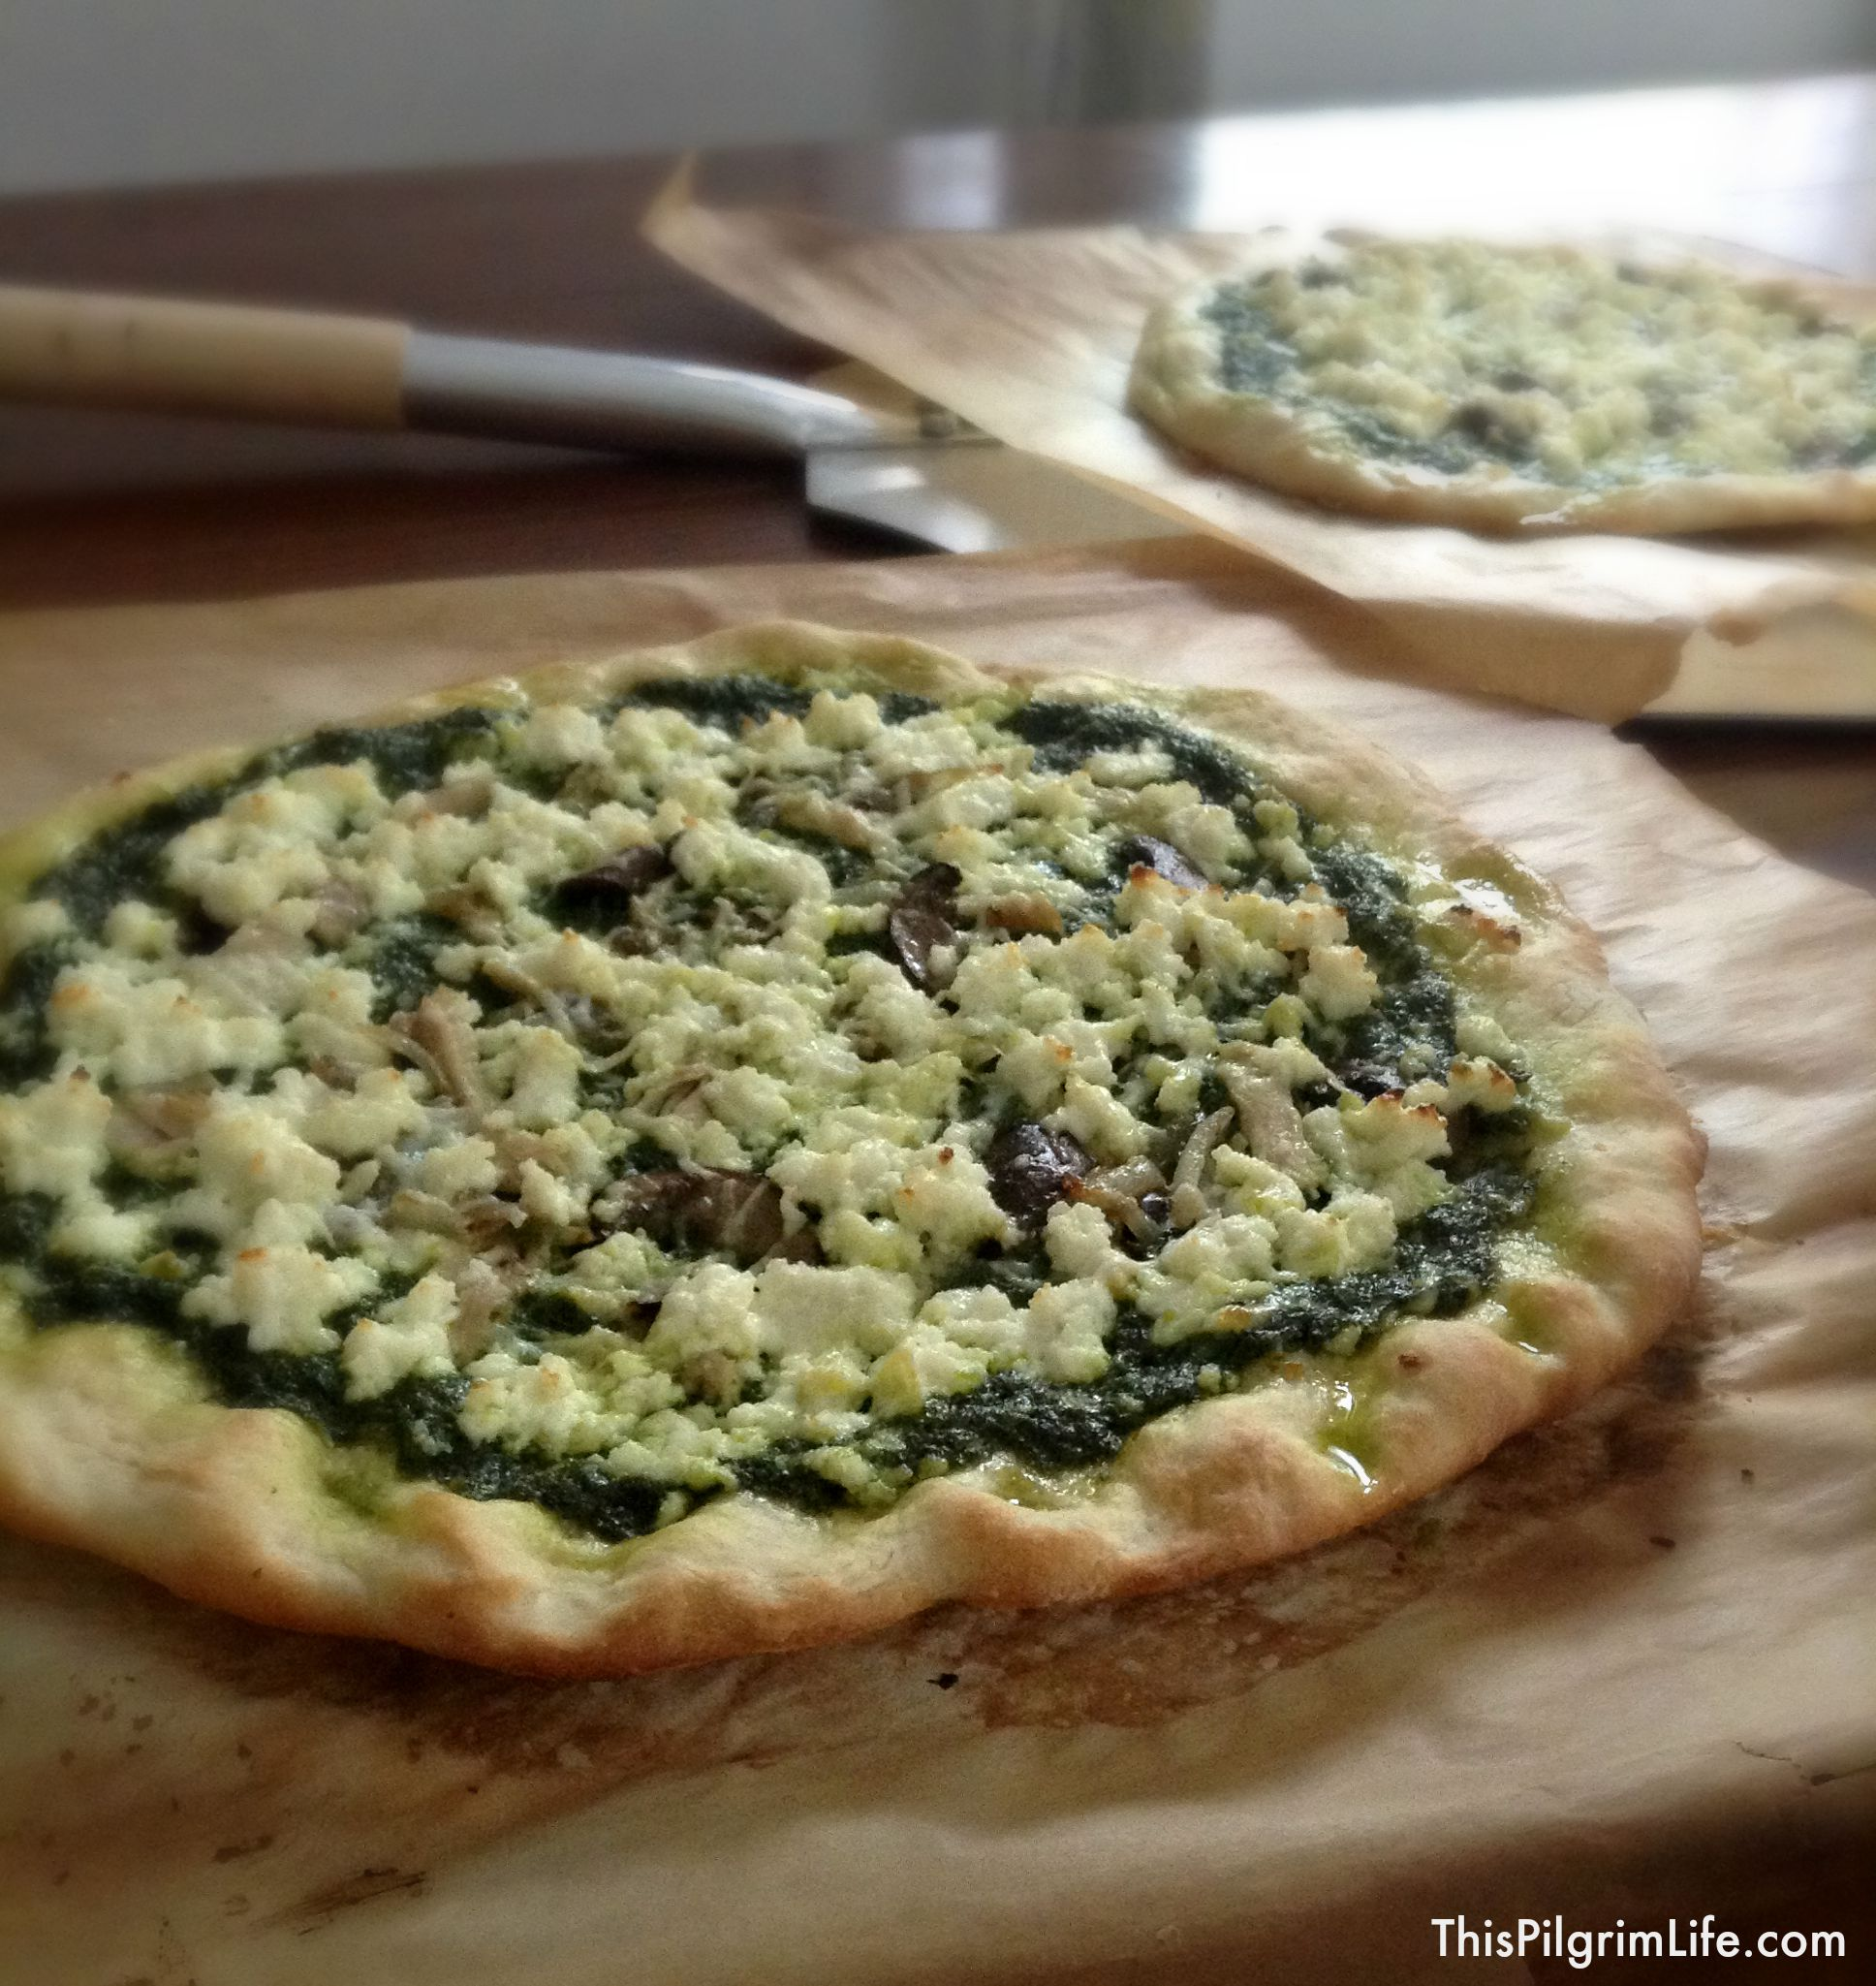 I LOVE homemade pizza, especially when it can be made quickly with ingredients I already have on hand like this pesto pizza!